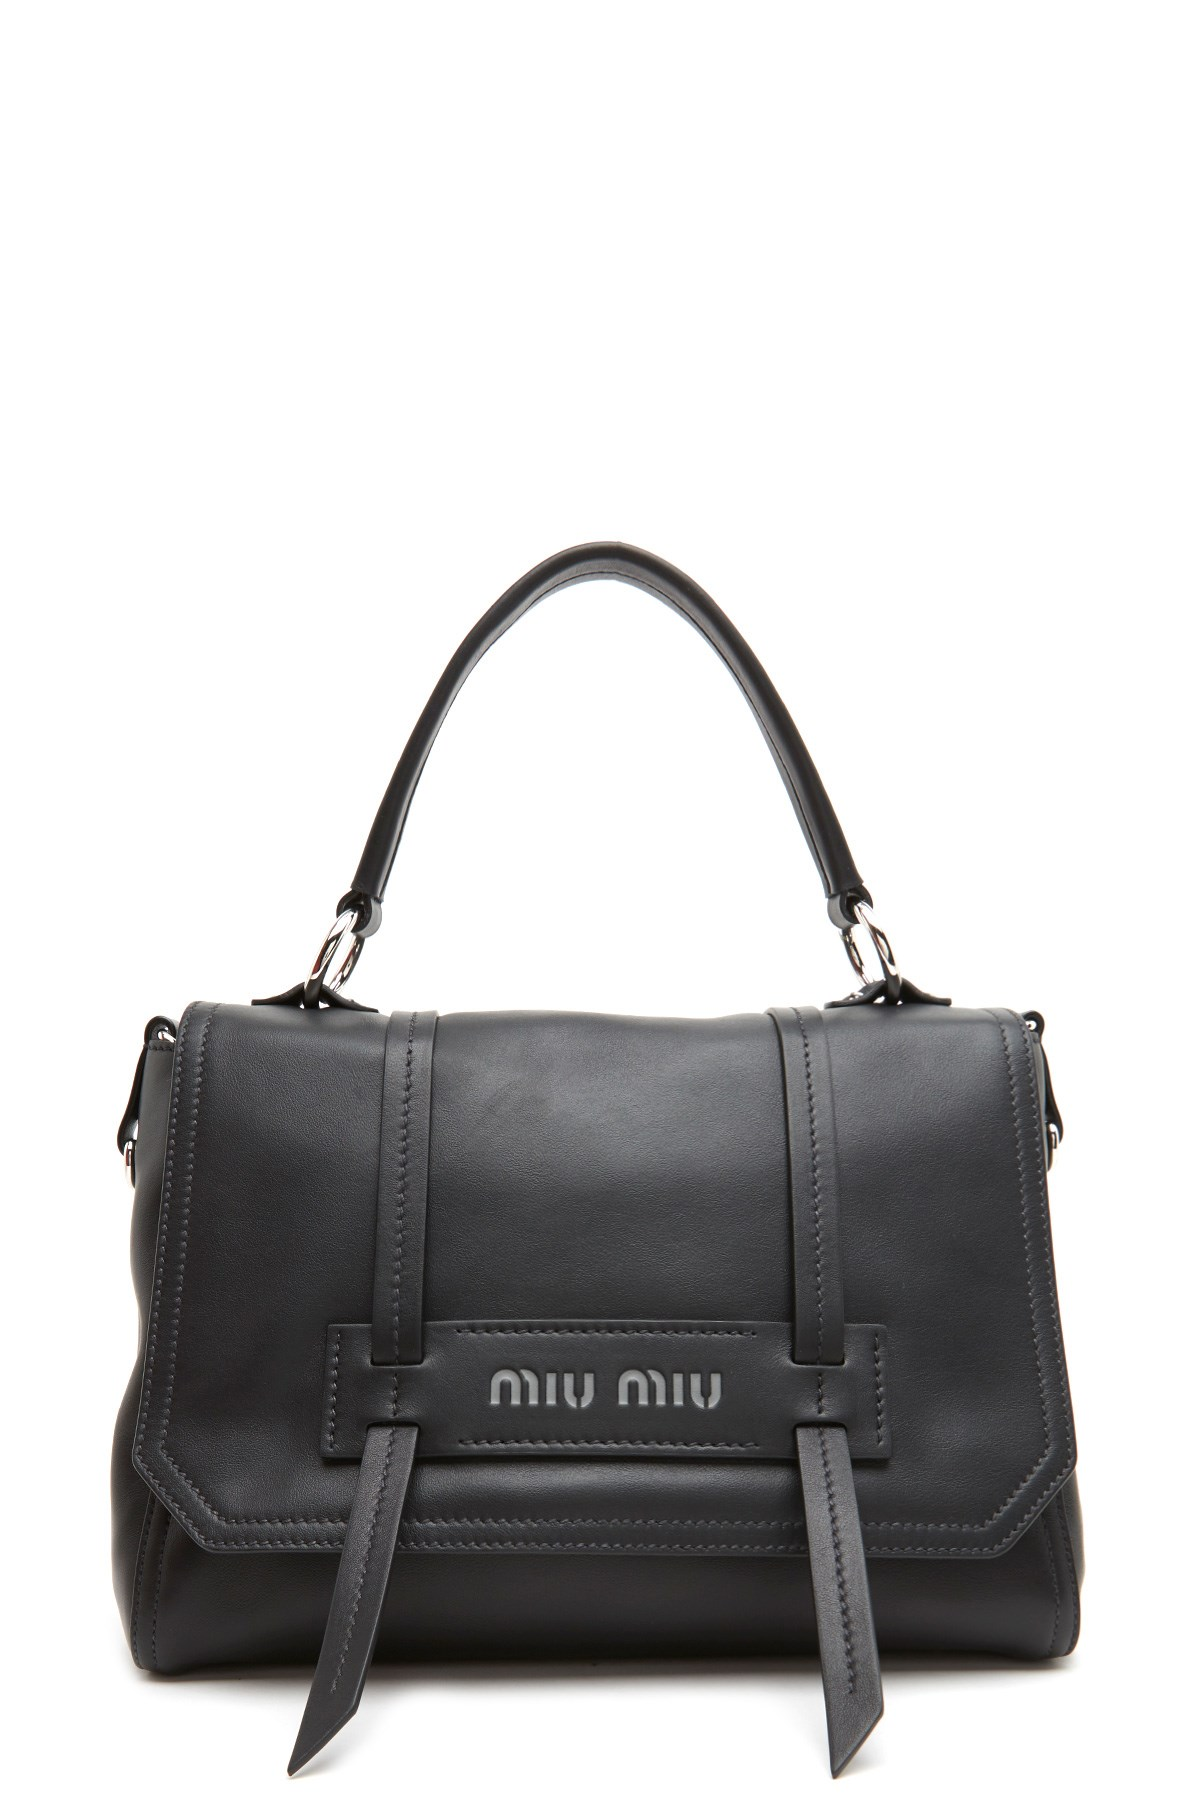 miu miu  cartella  hand bag available on julian-fashion.com - 60136 c98cb0df5df